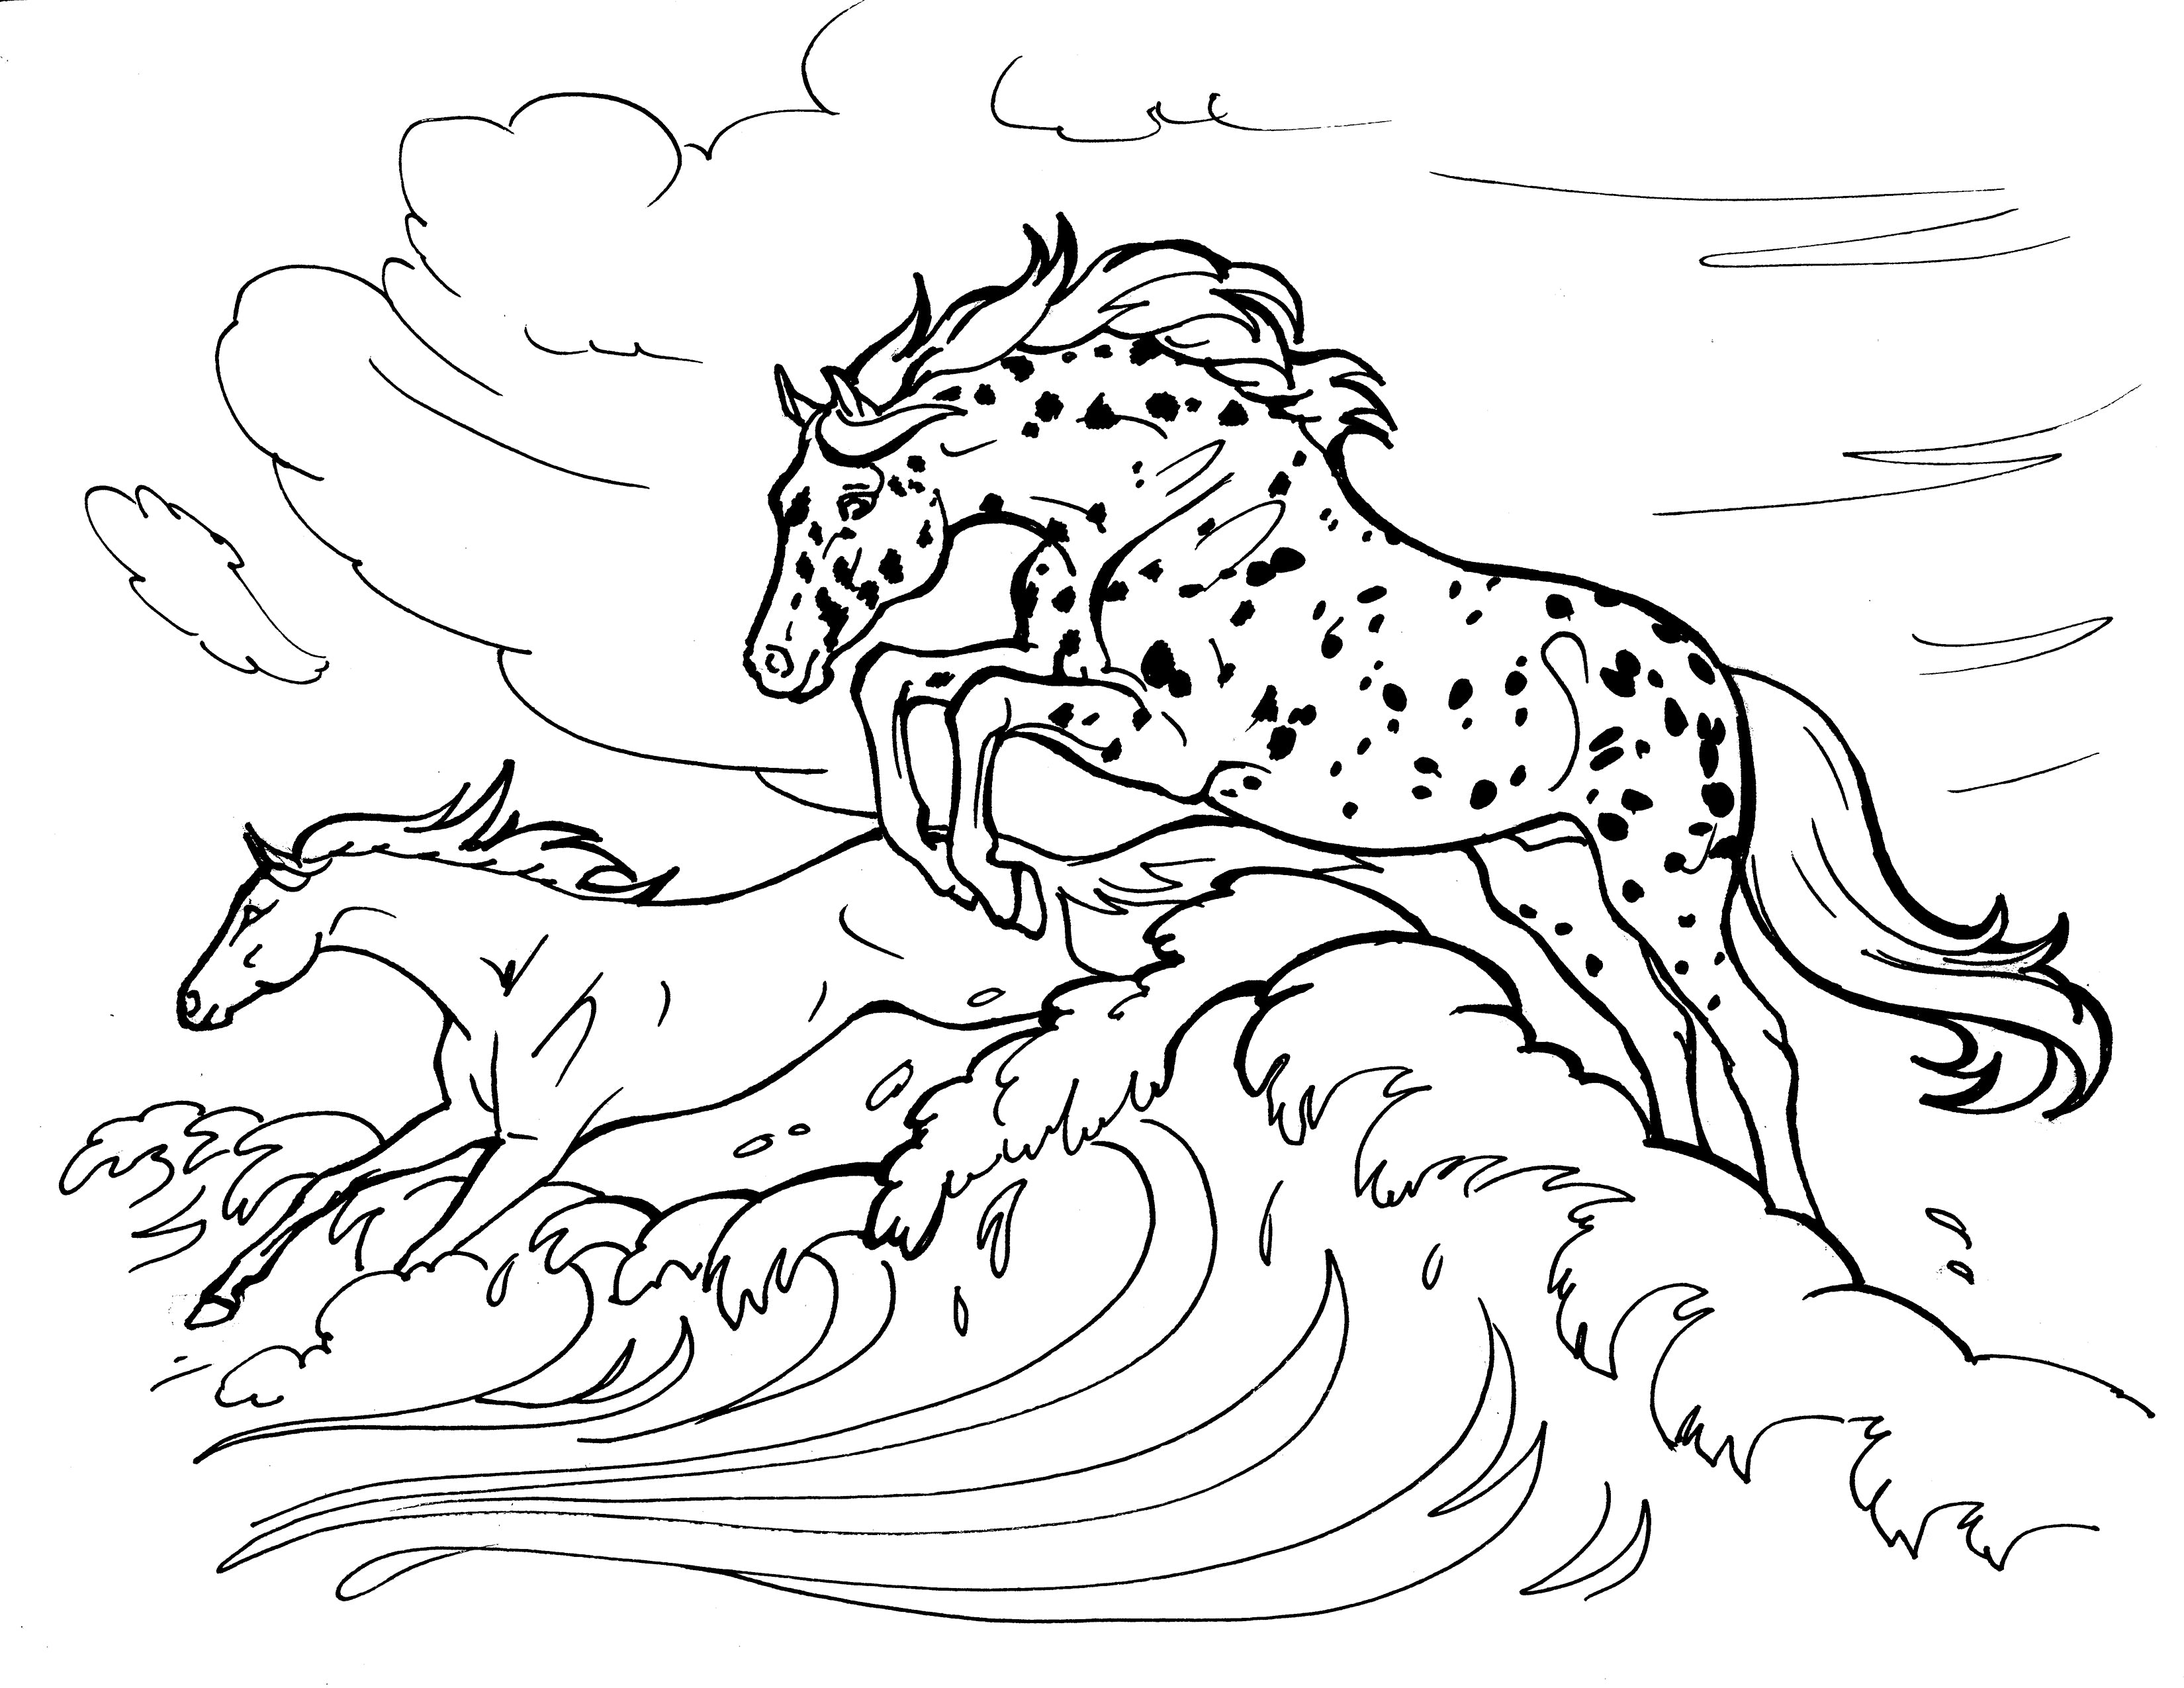 16 Best Equestrian Coloring Books images | Coloring books ... | 2550x3300